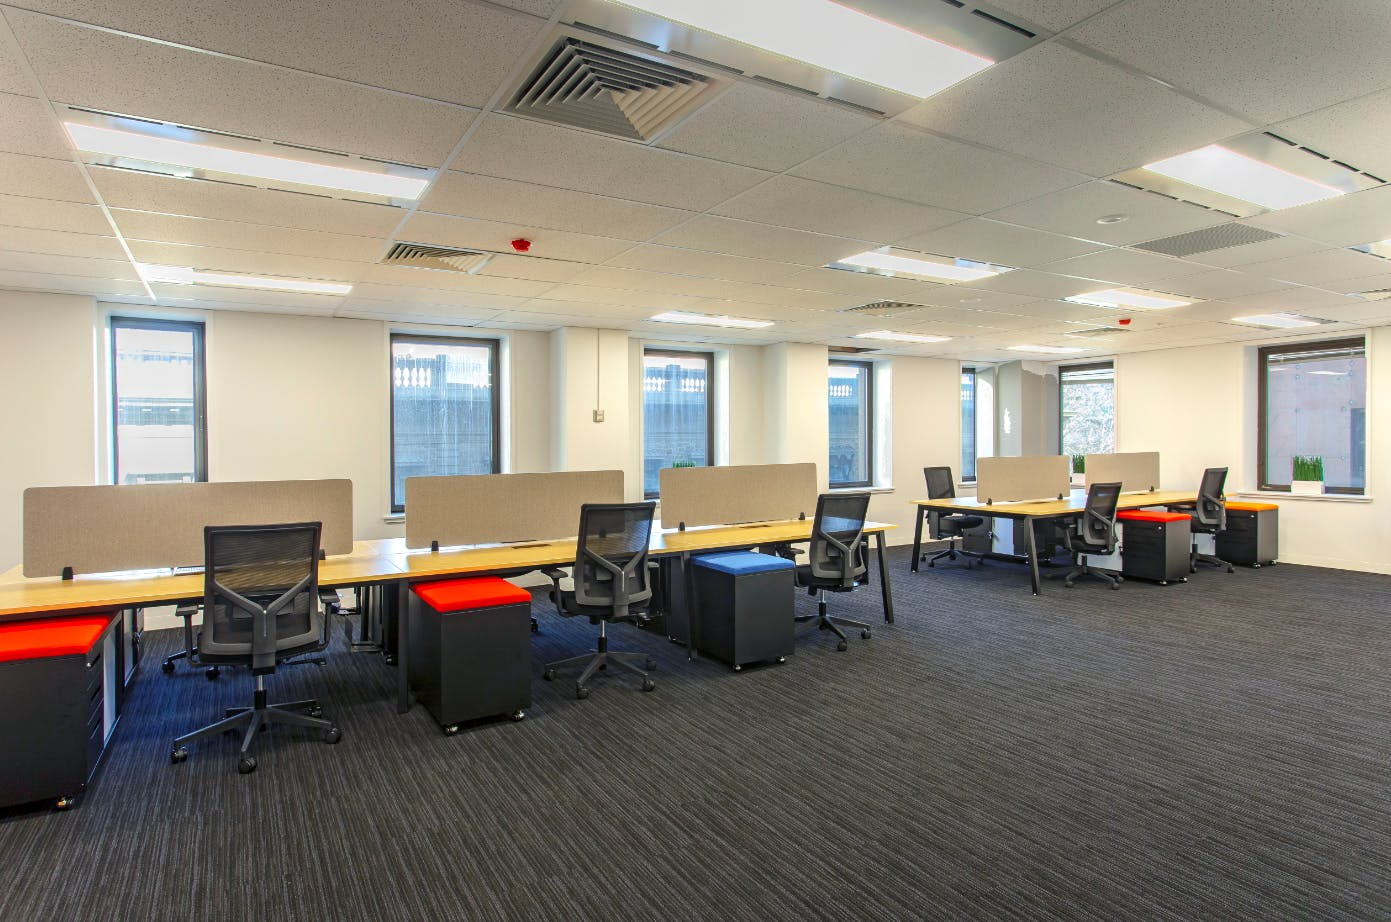 Suite 8, serviced office at Spot Co-Working, image 2